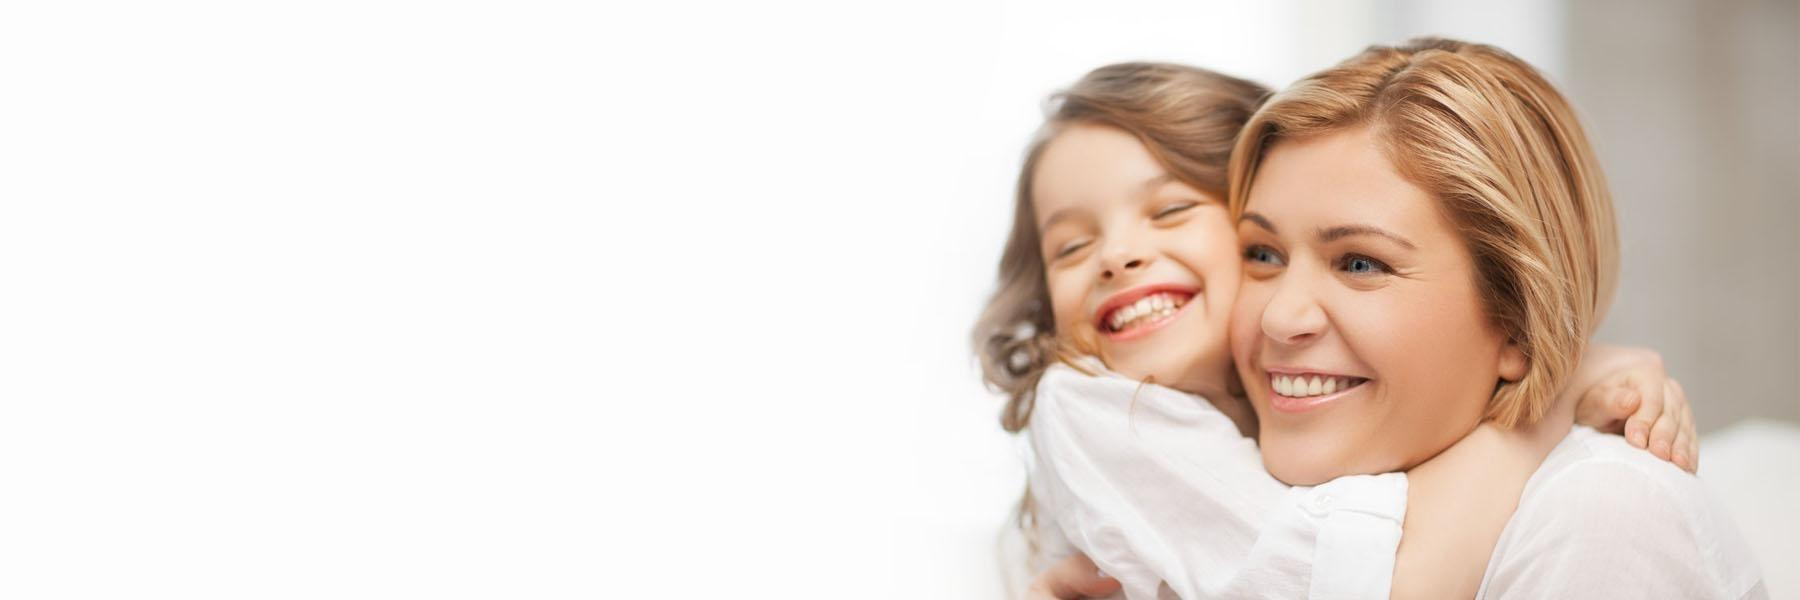 Children's Dentistry Phinney Ridge banner image